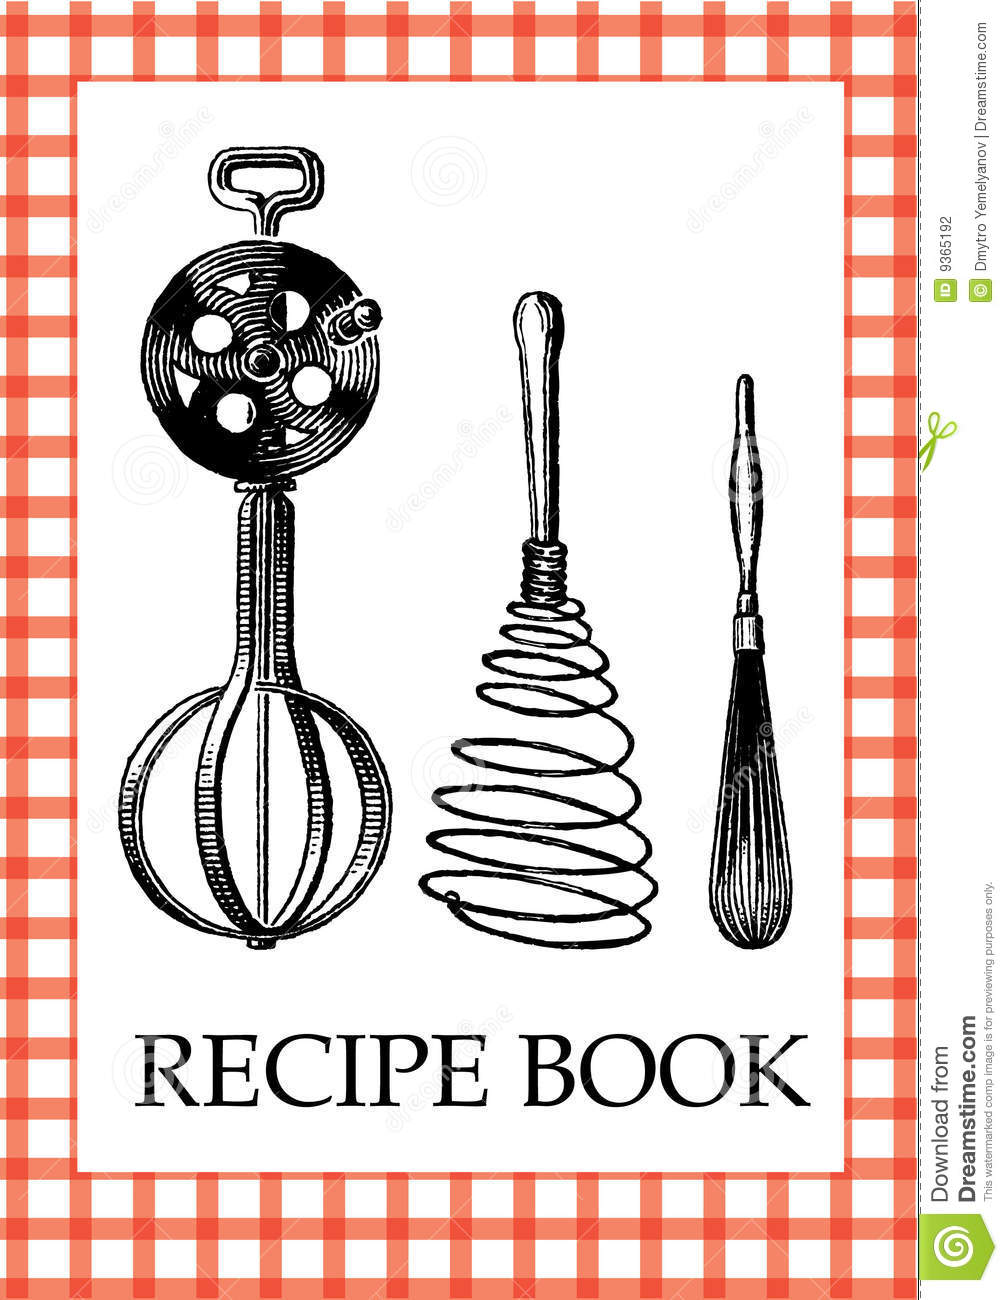 Cookbook Cover Template Free Download : Recipe book stock vector illustration of accessory